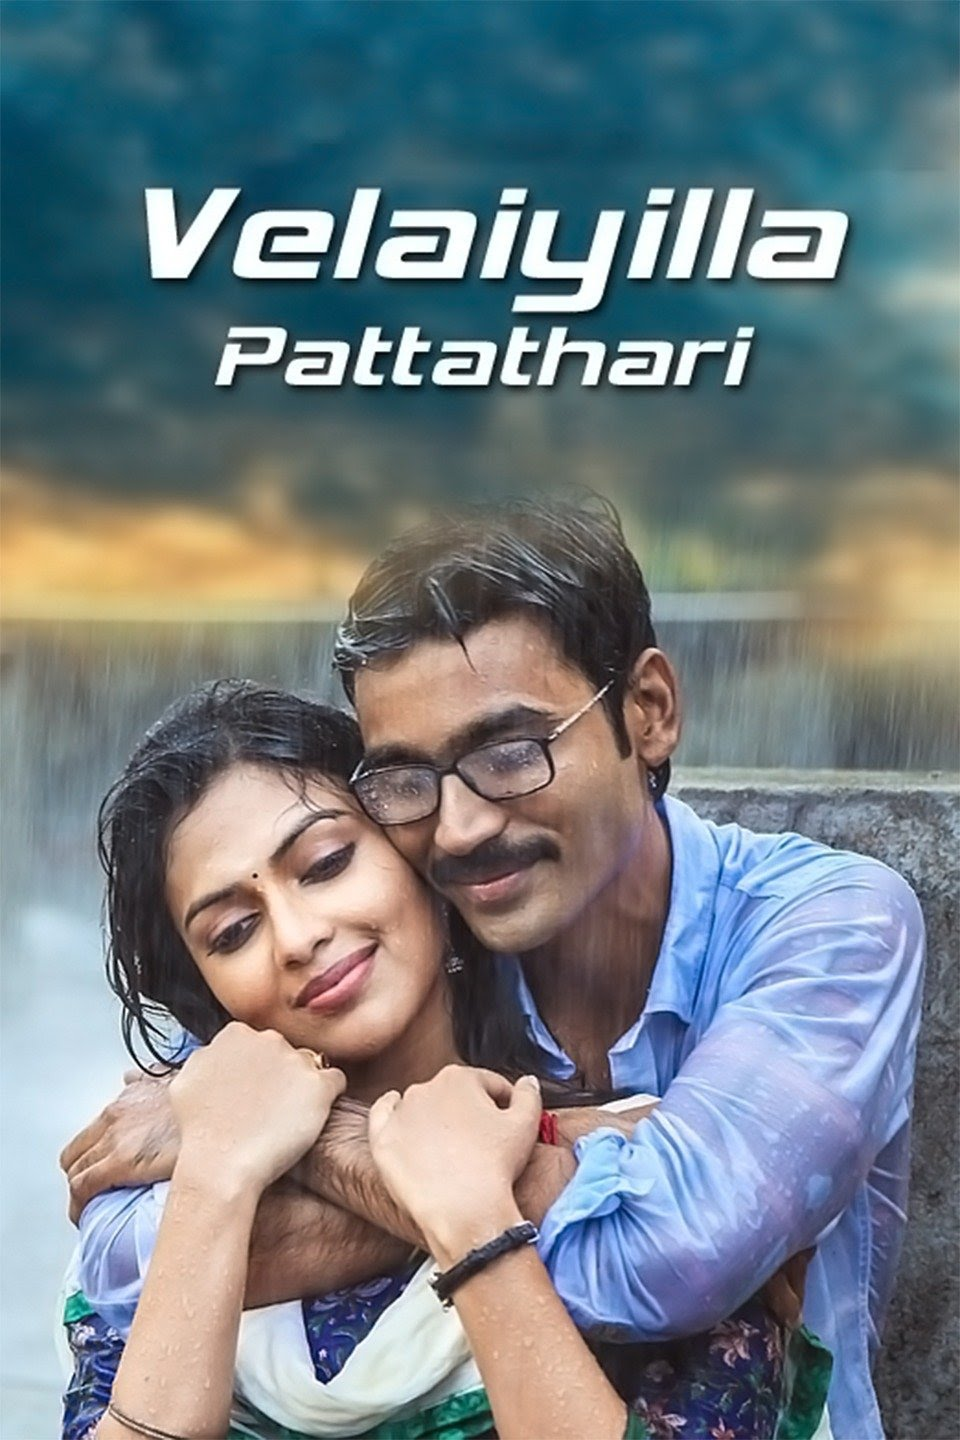 Velaiyilla Pattathari (VIP) 2014 Hindi Dual Audio 1080p UNCUT HDRip 2.9GB Download